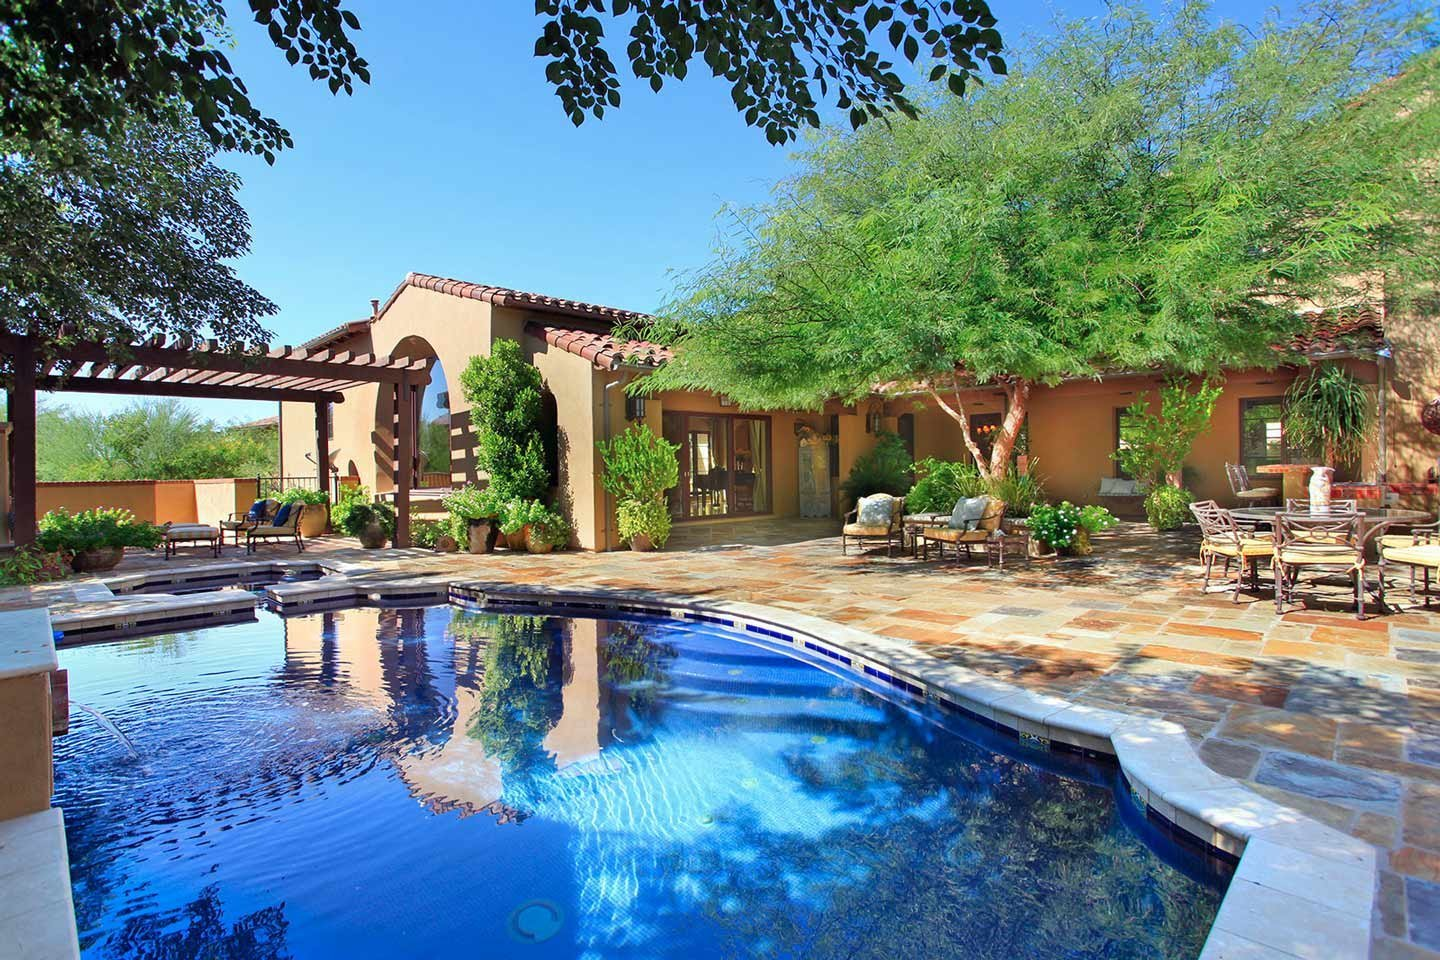 Real Estate For Sale In San Tan Valley With A Pool